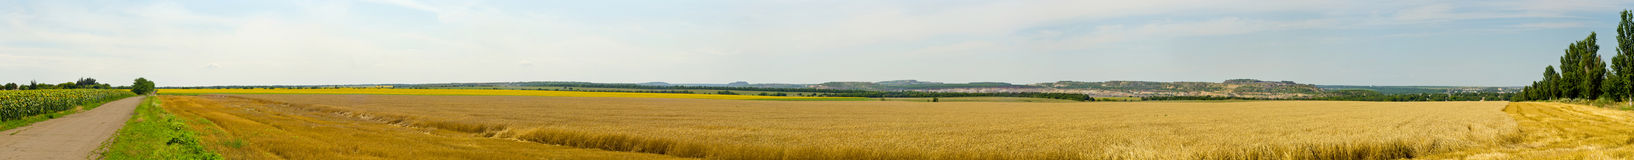 Panorama of the wheat field Stock Images